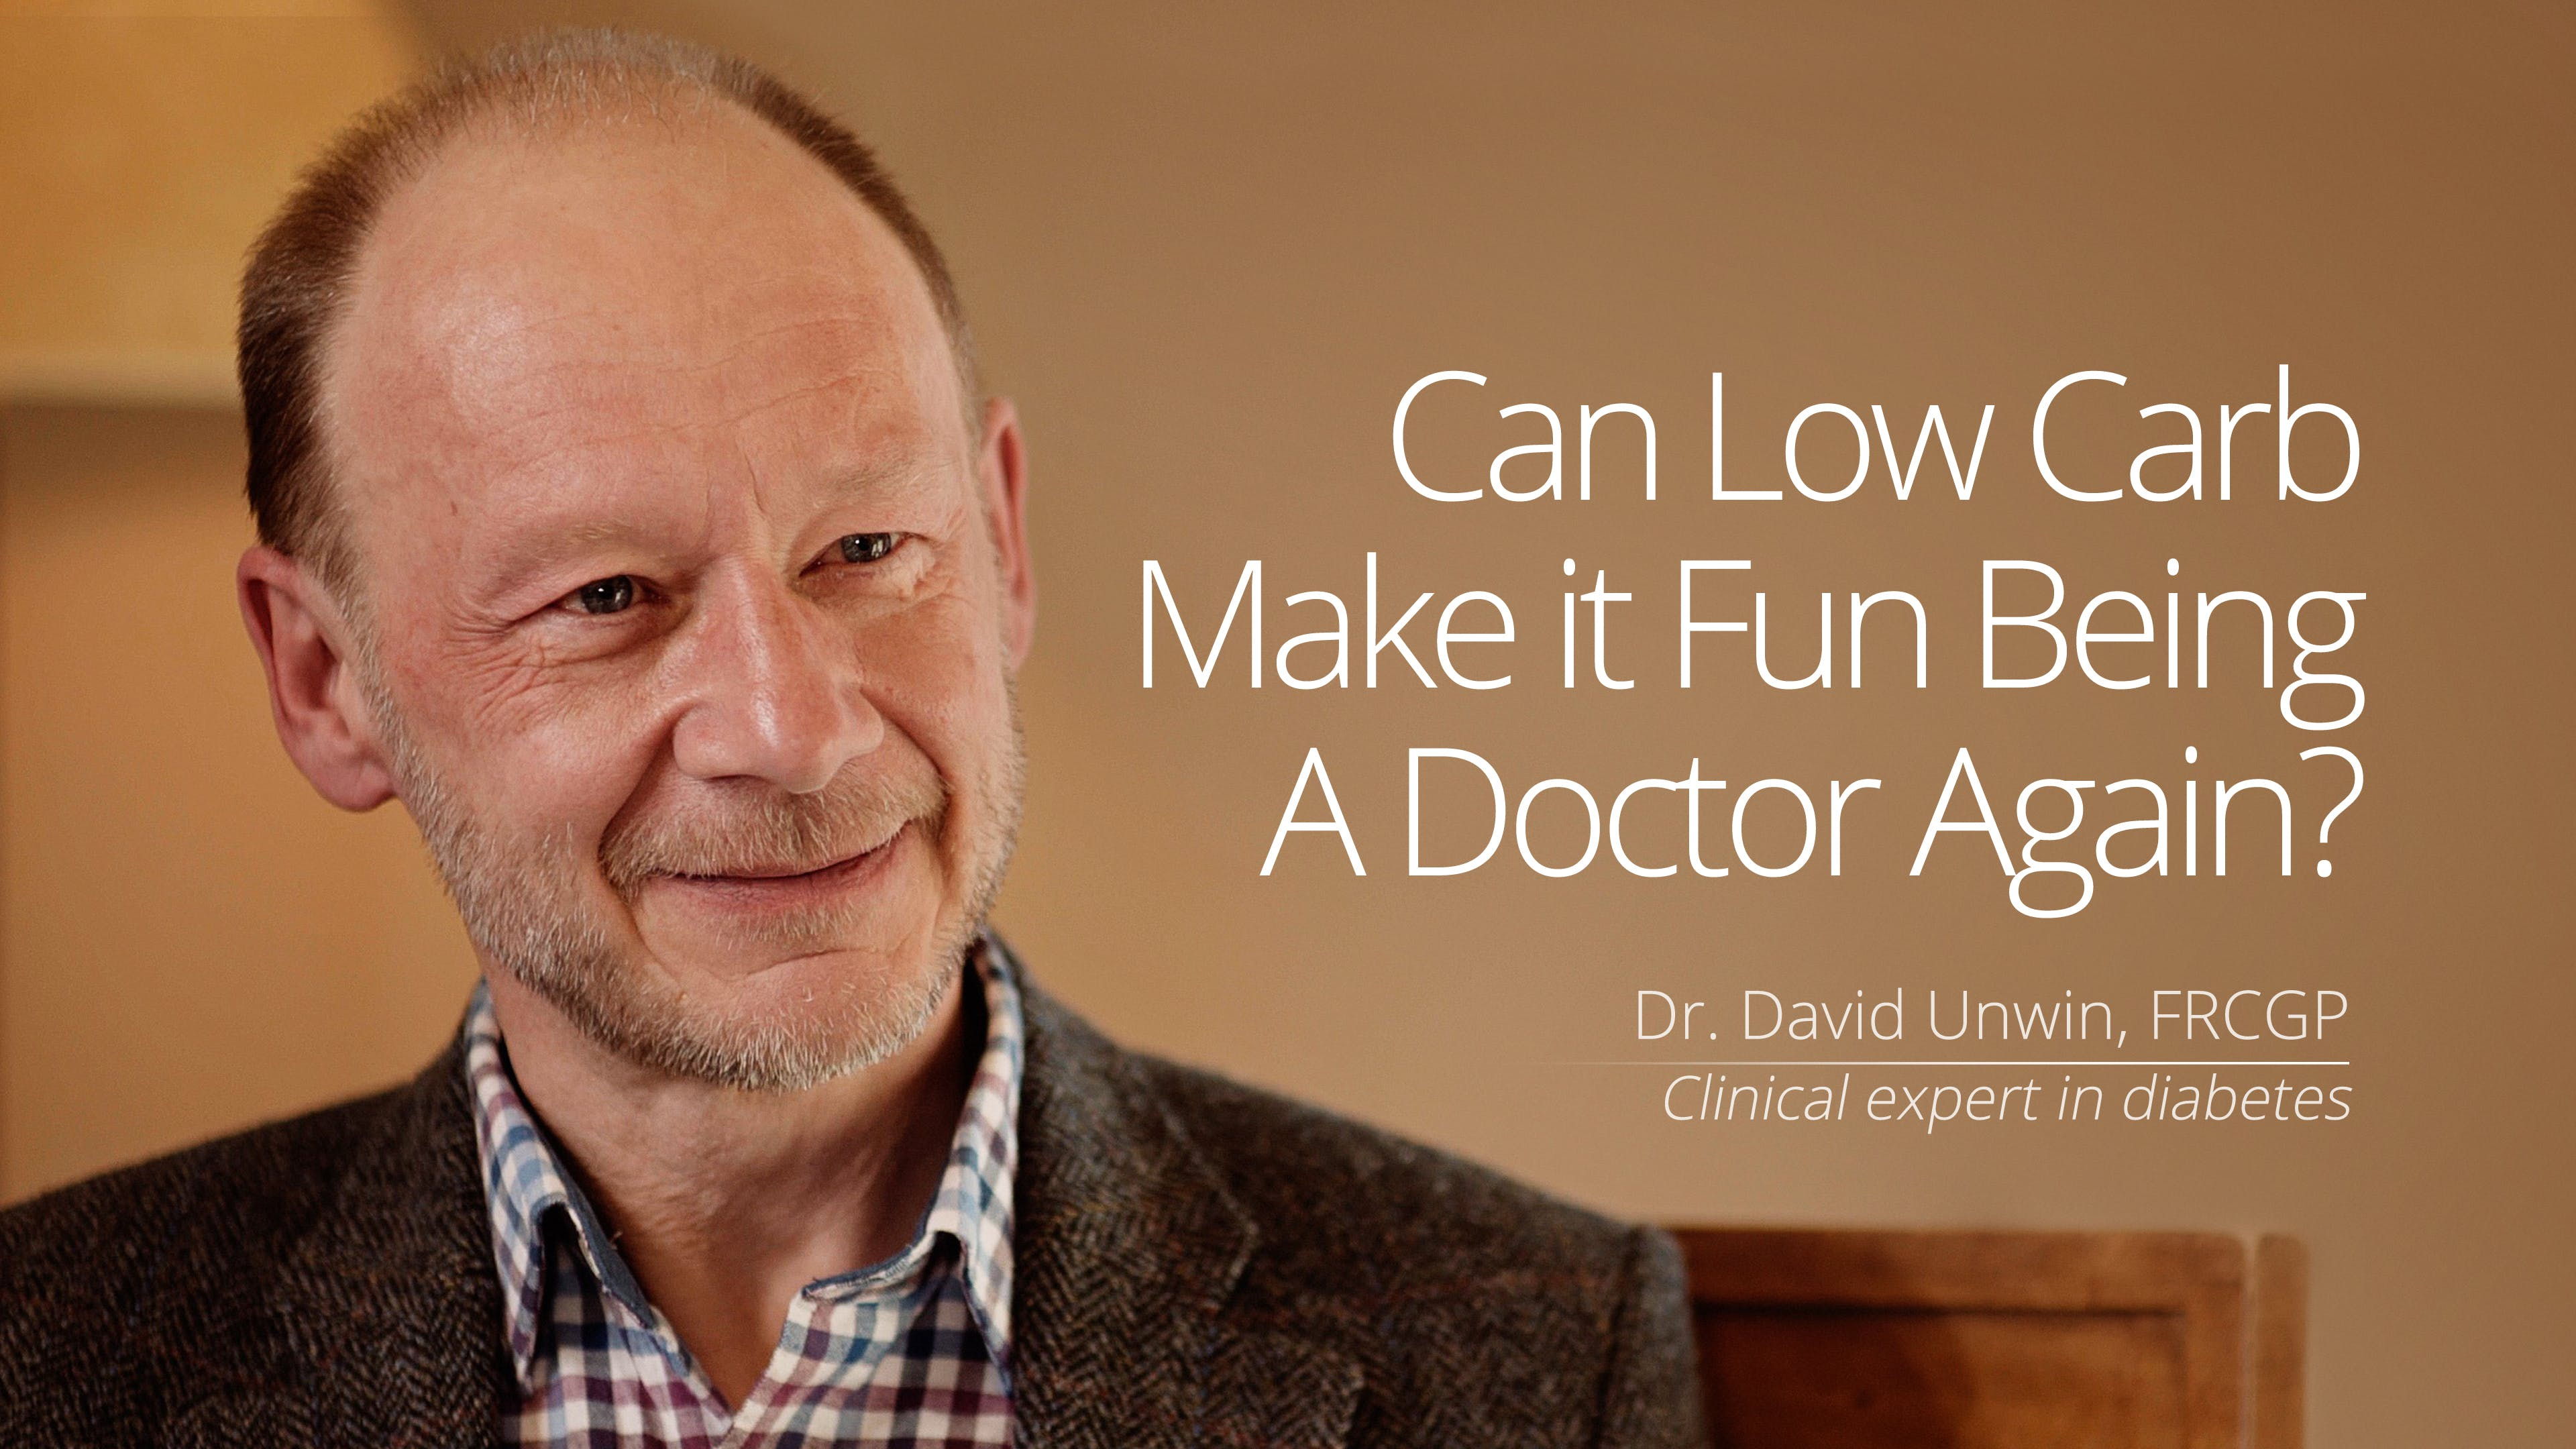 Can low carb make it fun to be a doctor?